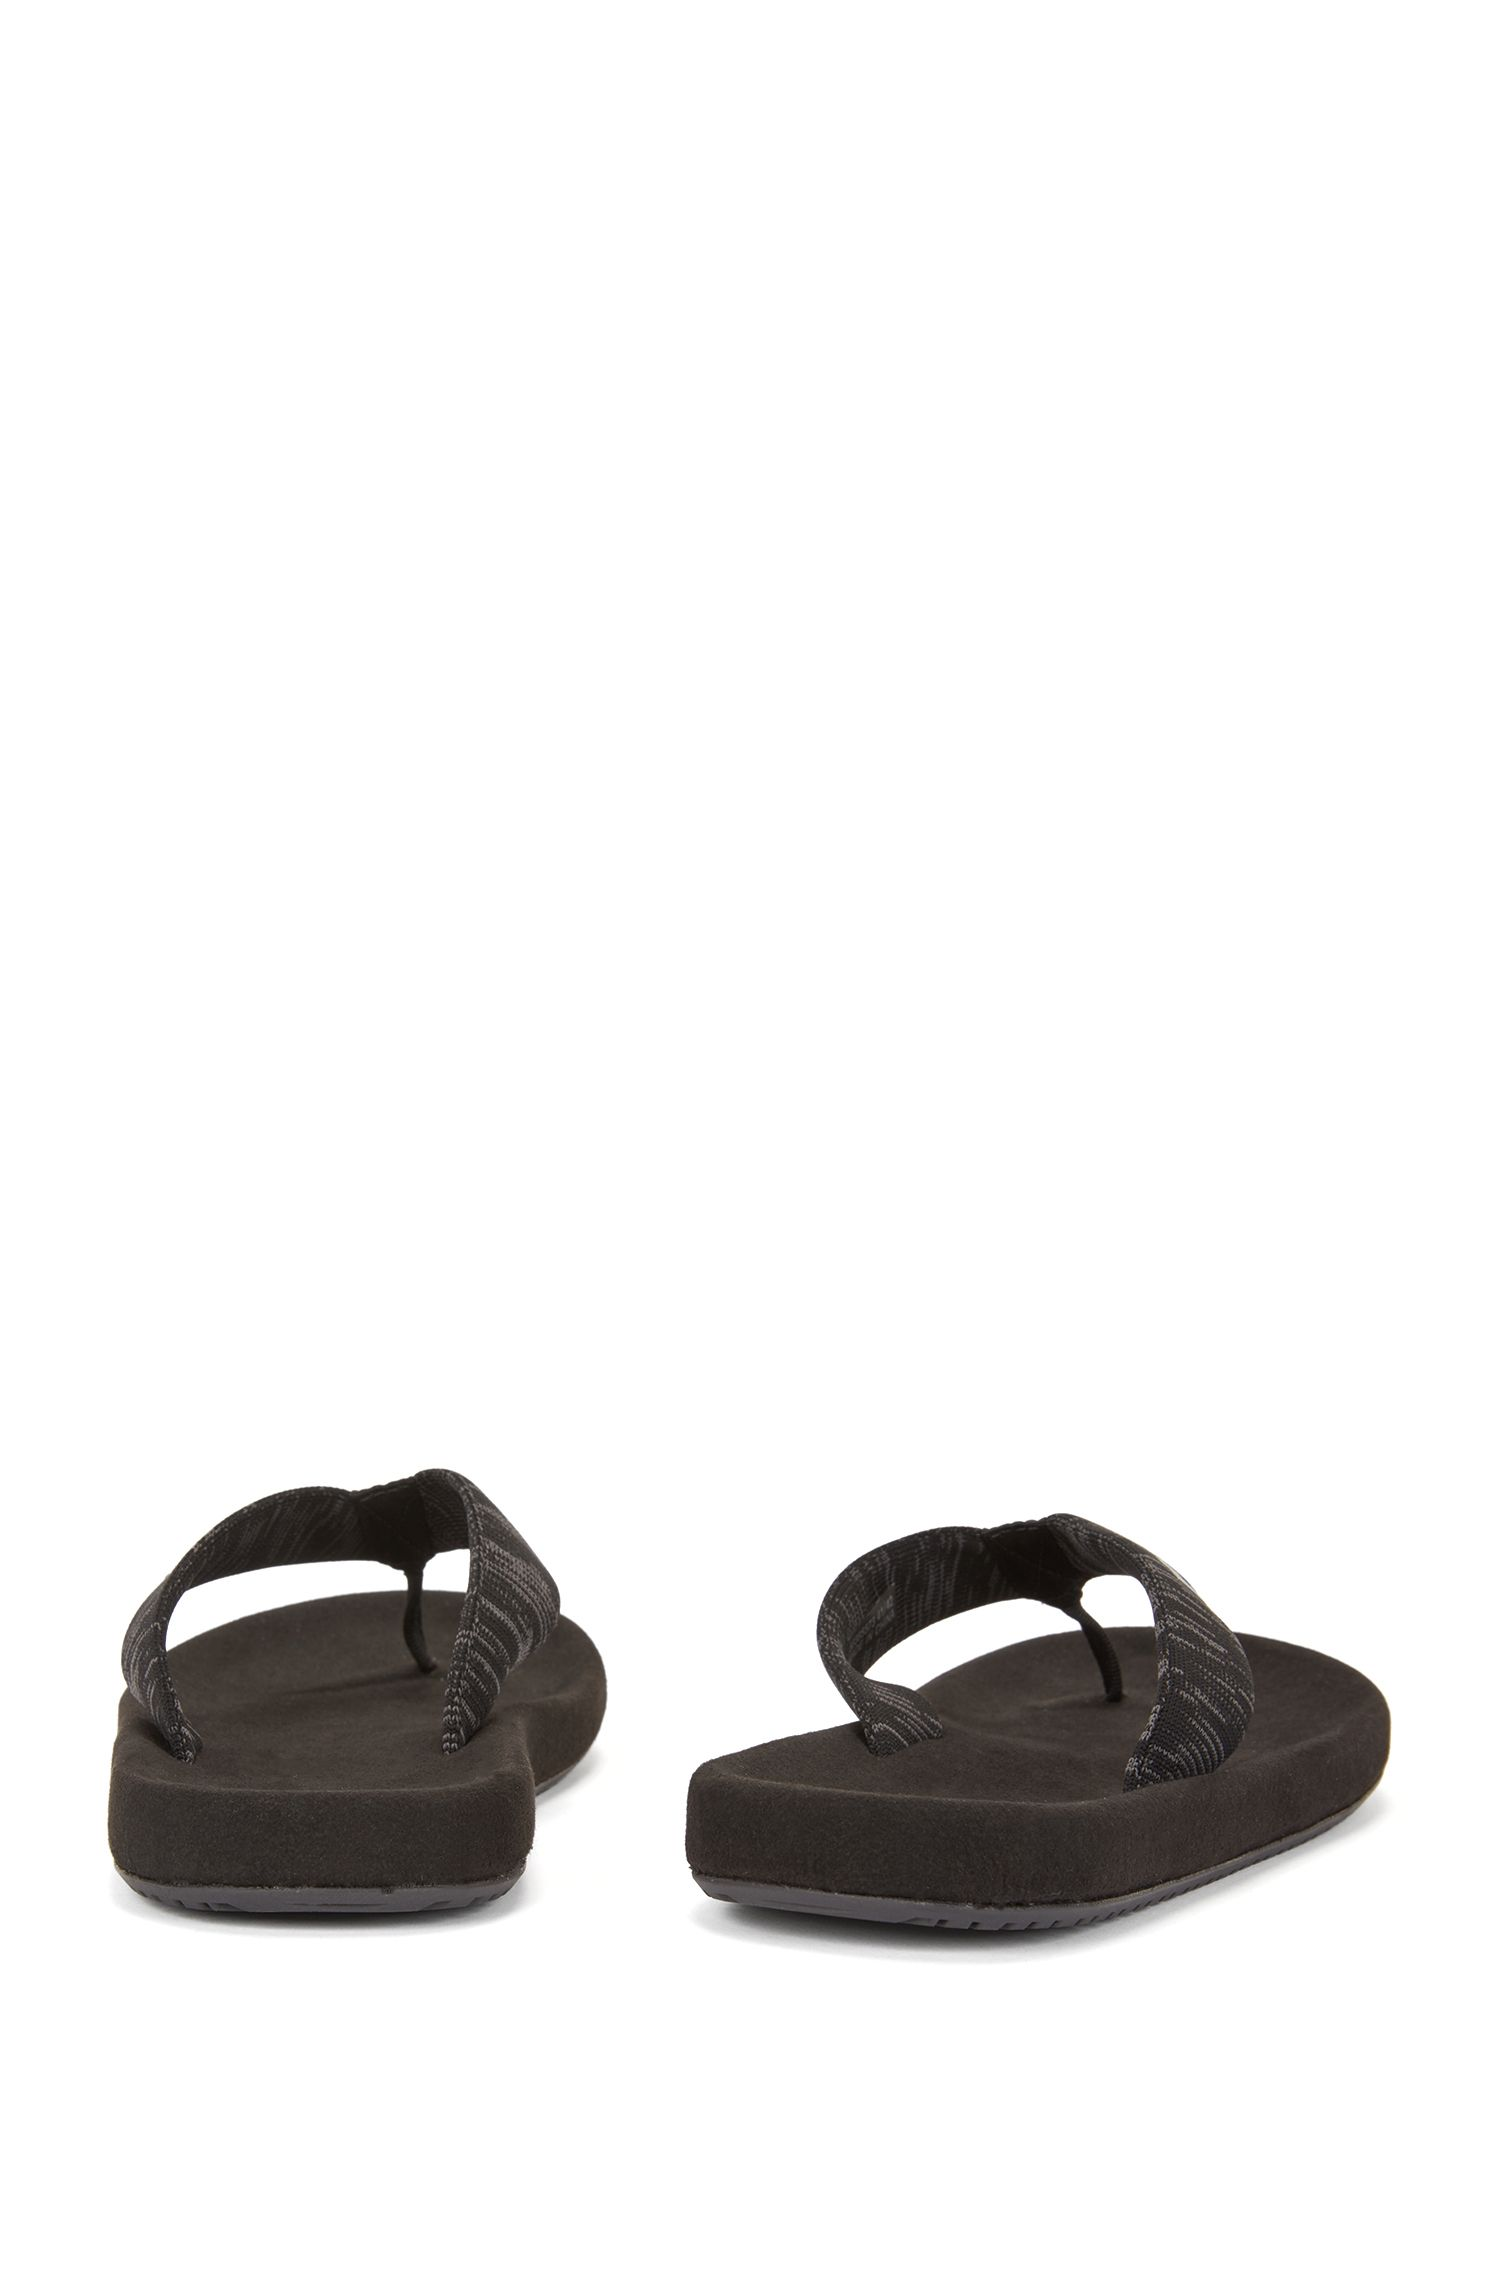 Knit Thong Sandal | Shoreline Thng Knit